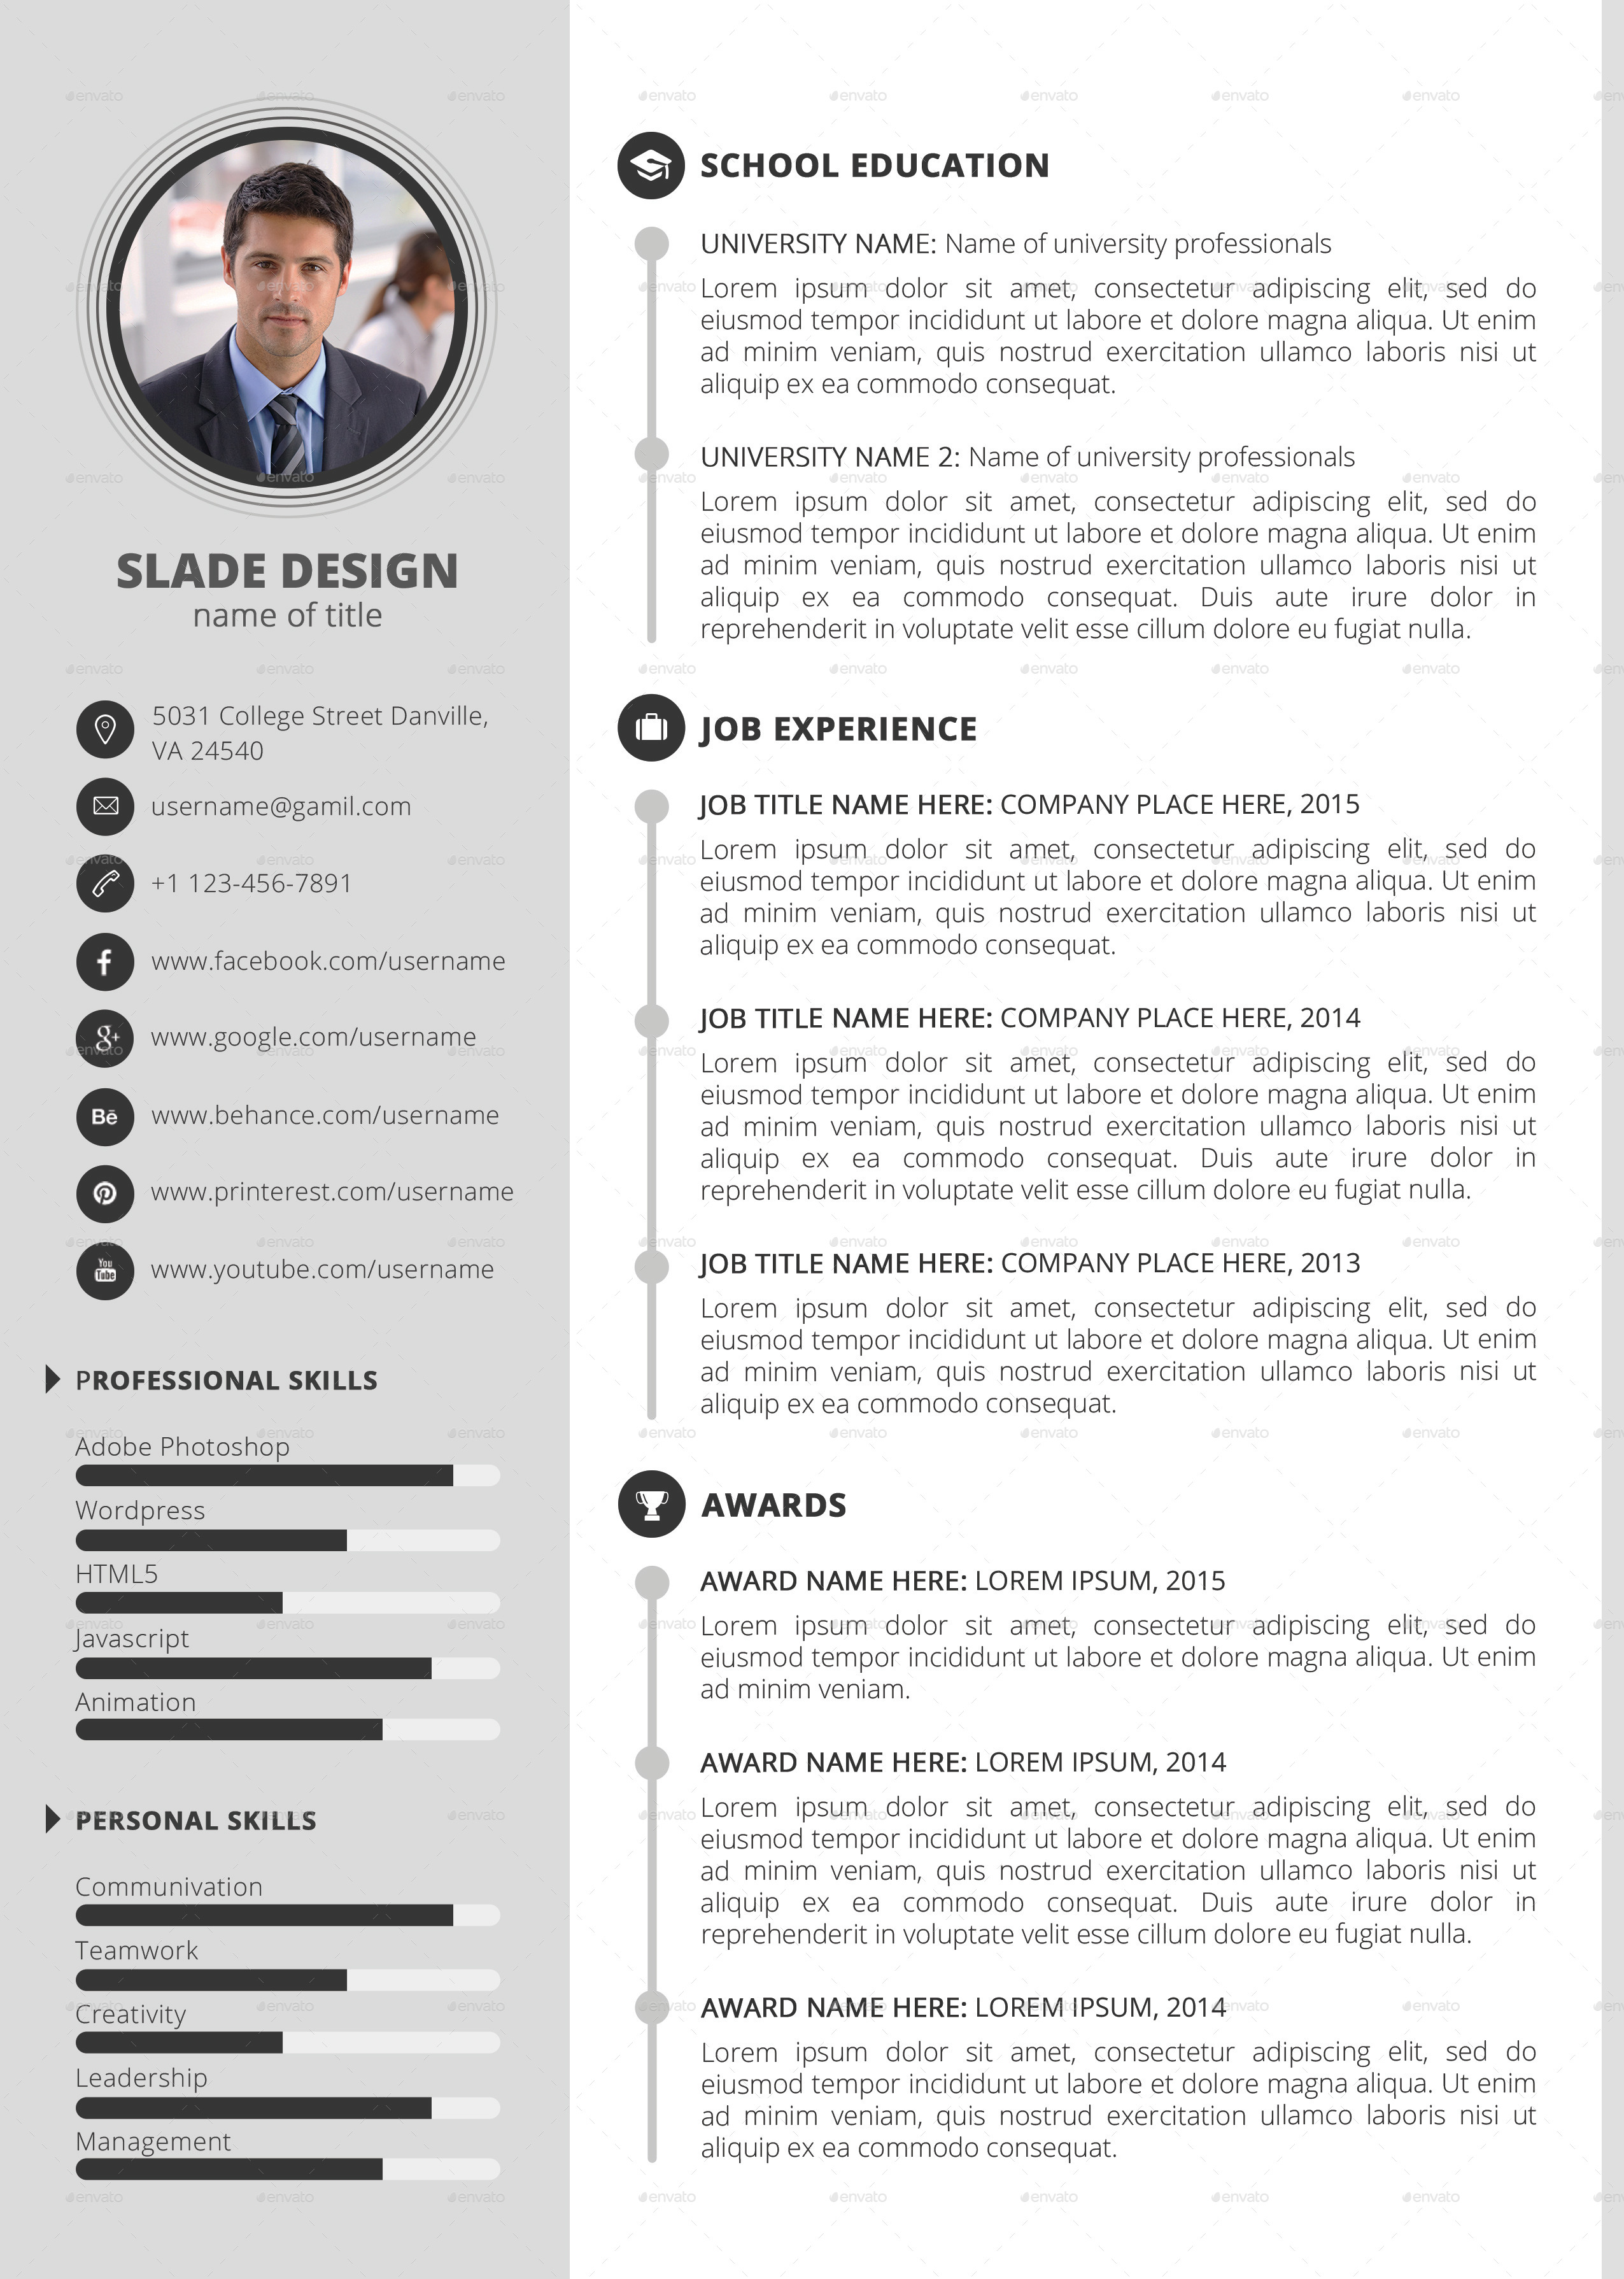 slade professional quality cv resume template by sladedesign images slade professional quality cv template version 02 jpg